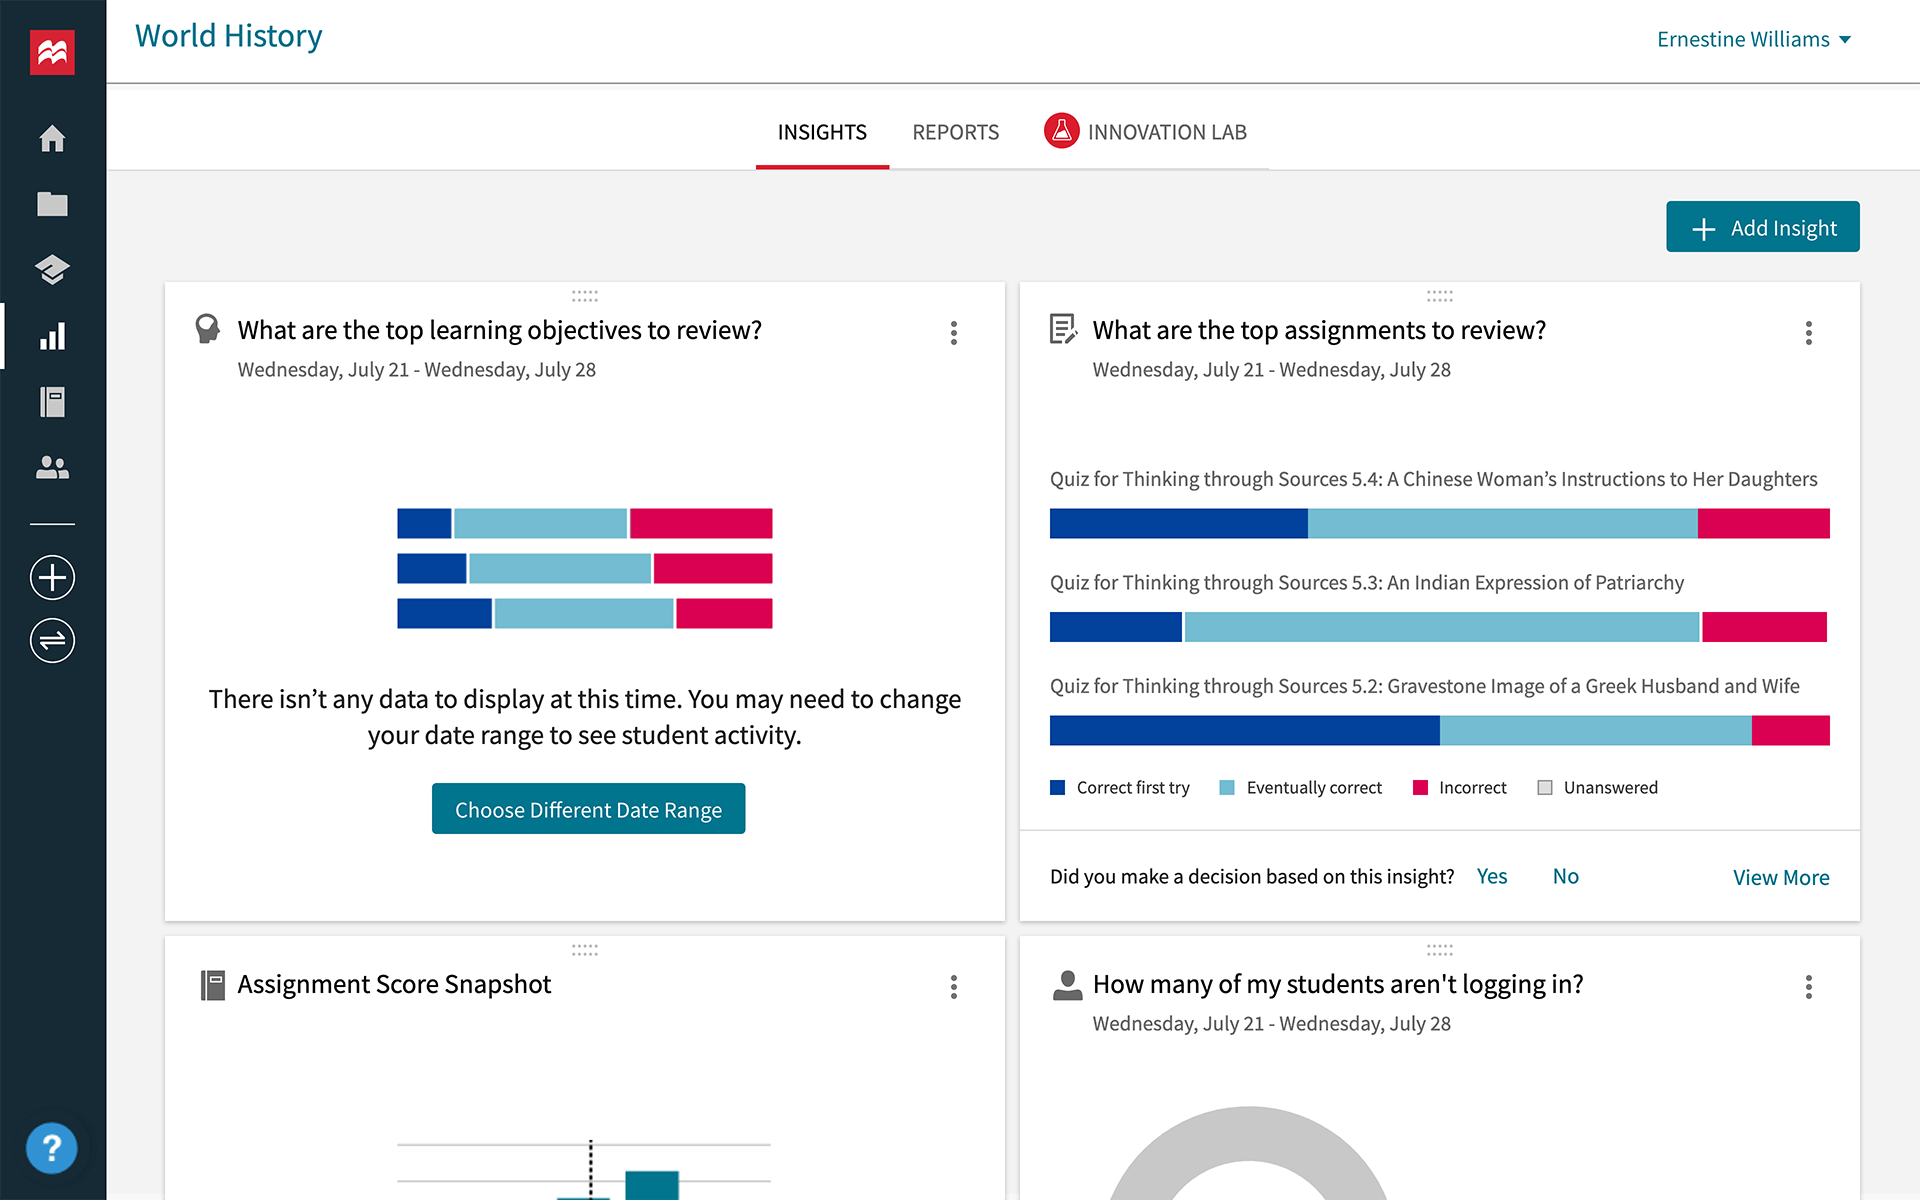 achieve insights and reporting